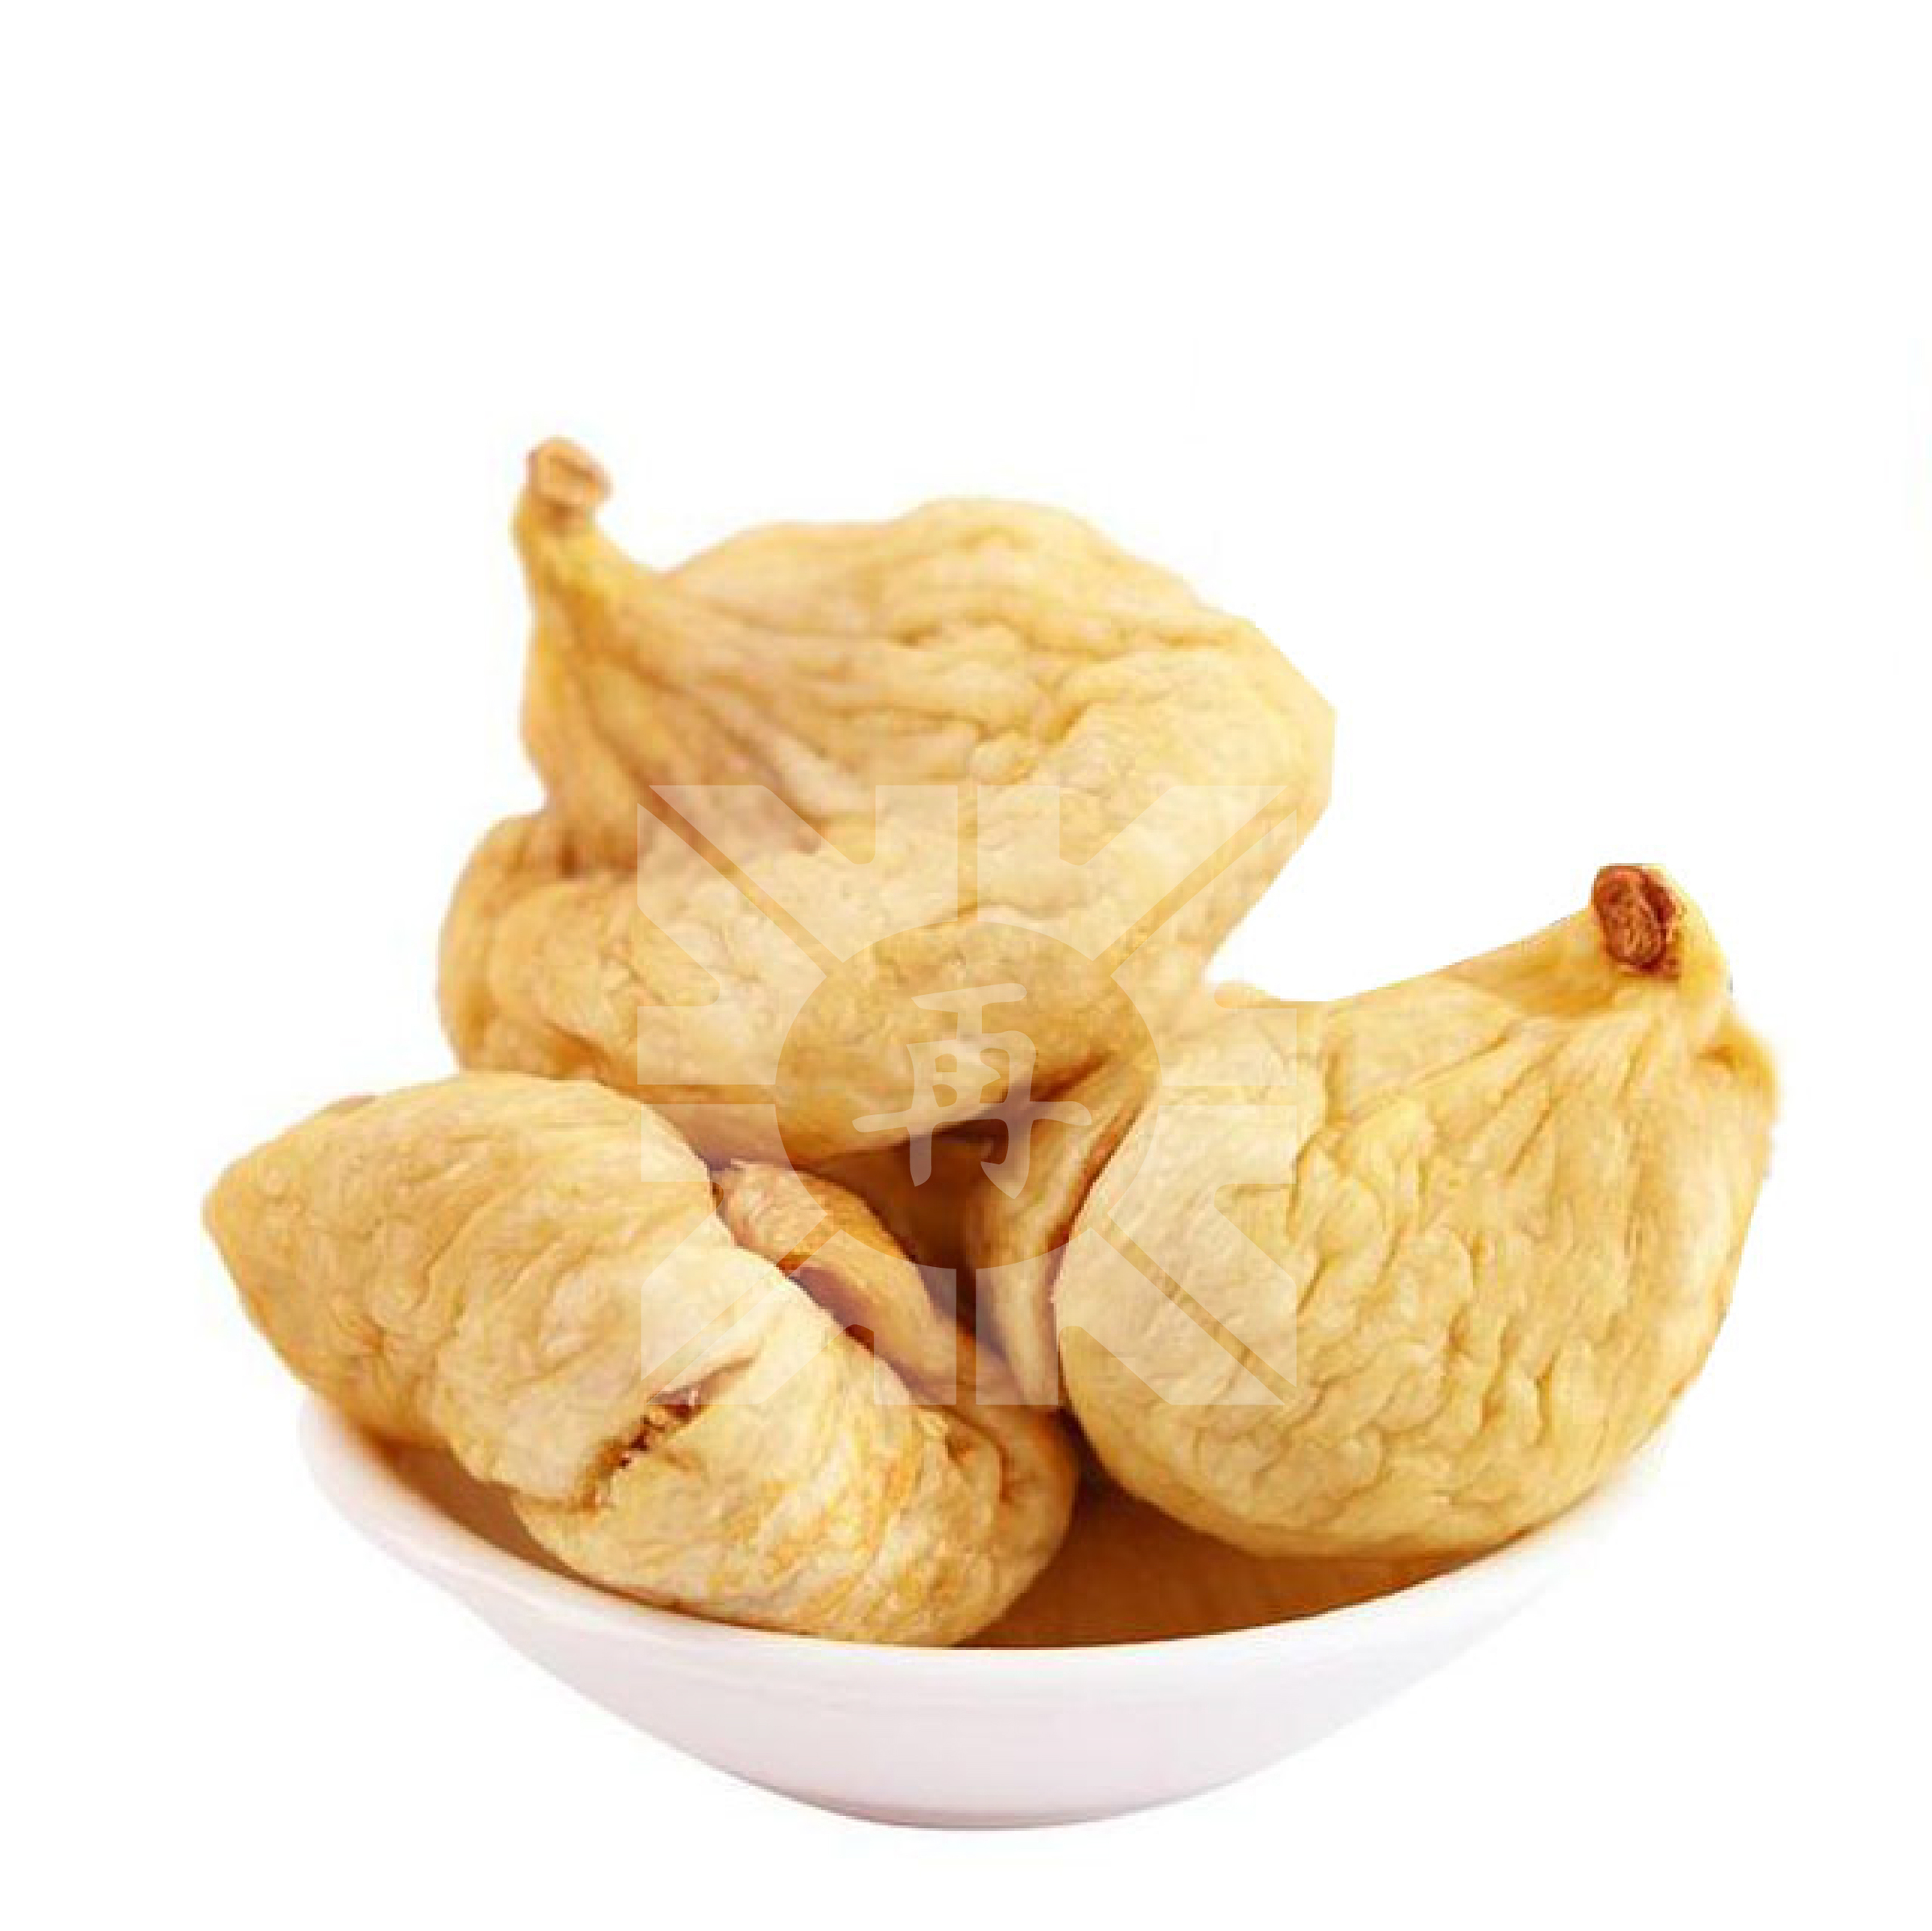 Dried Turkey Fig Premium AA 土耳其特级无花果 400g-1pkt